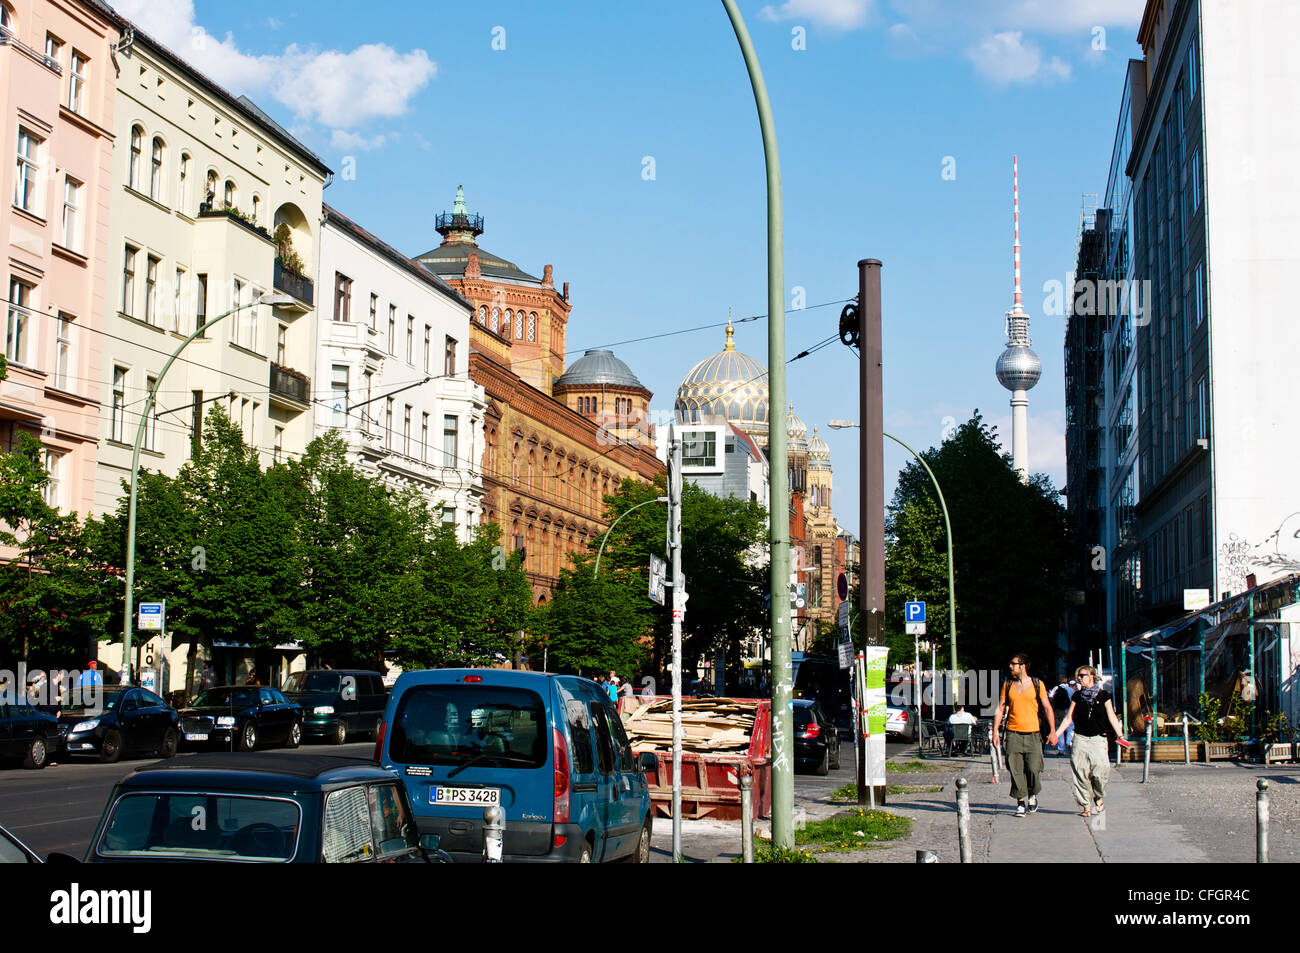 Walking in the sunshine down Oranienburger Strasse in the former East Berlin district of Mitte in Berlin, Germany. - Stock Image